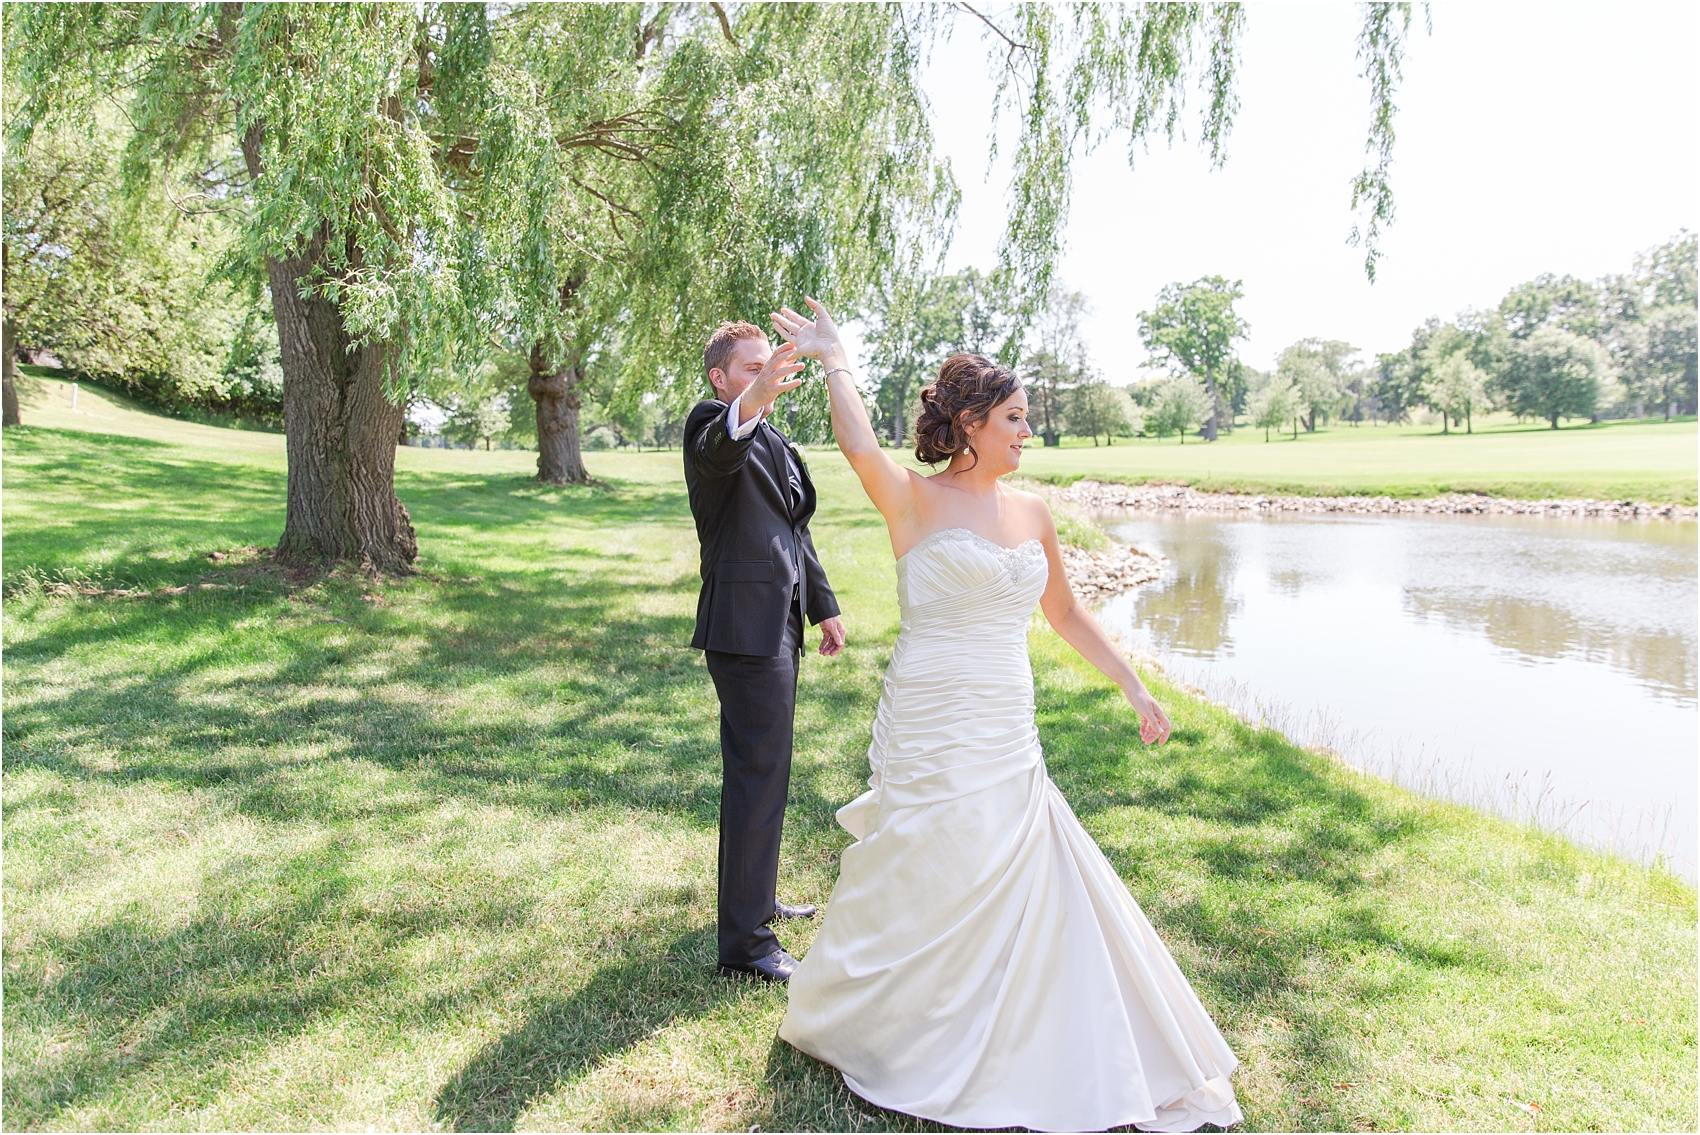 classic-wedding-photos-at-great-oaks-country-club-in-rochester-hills-mi-by-courtney-carolyn-photography_0055.jpg